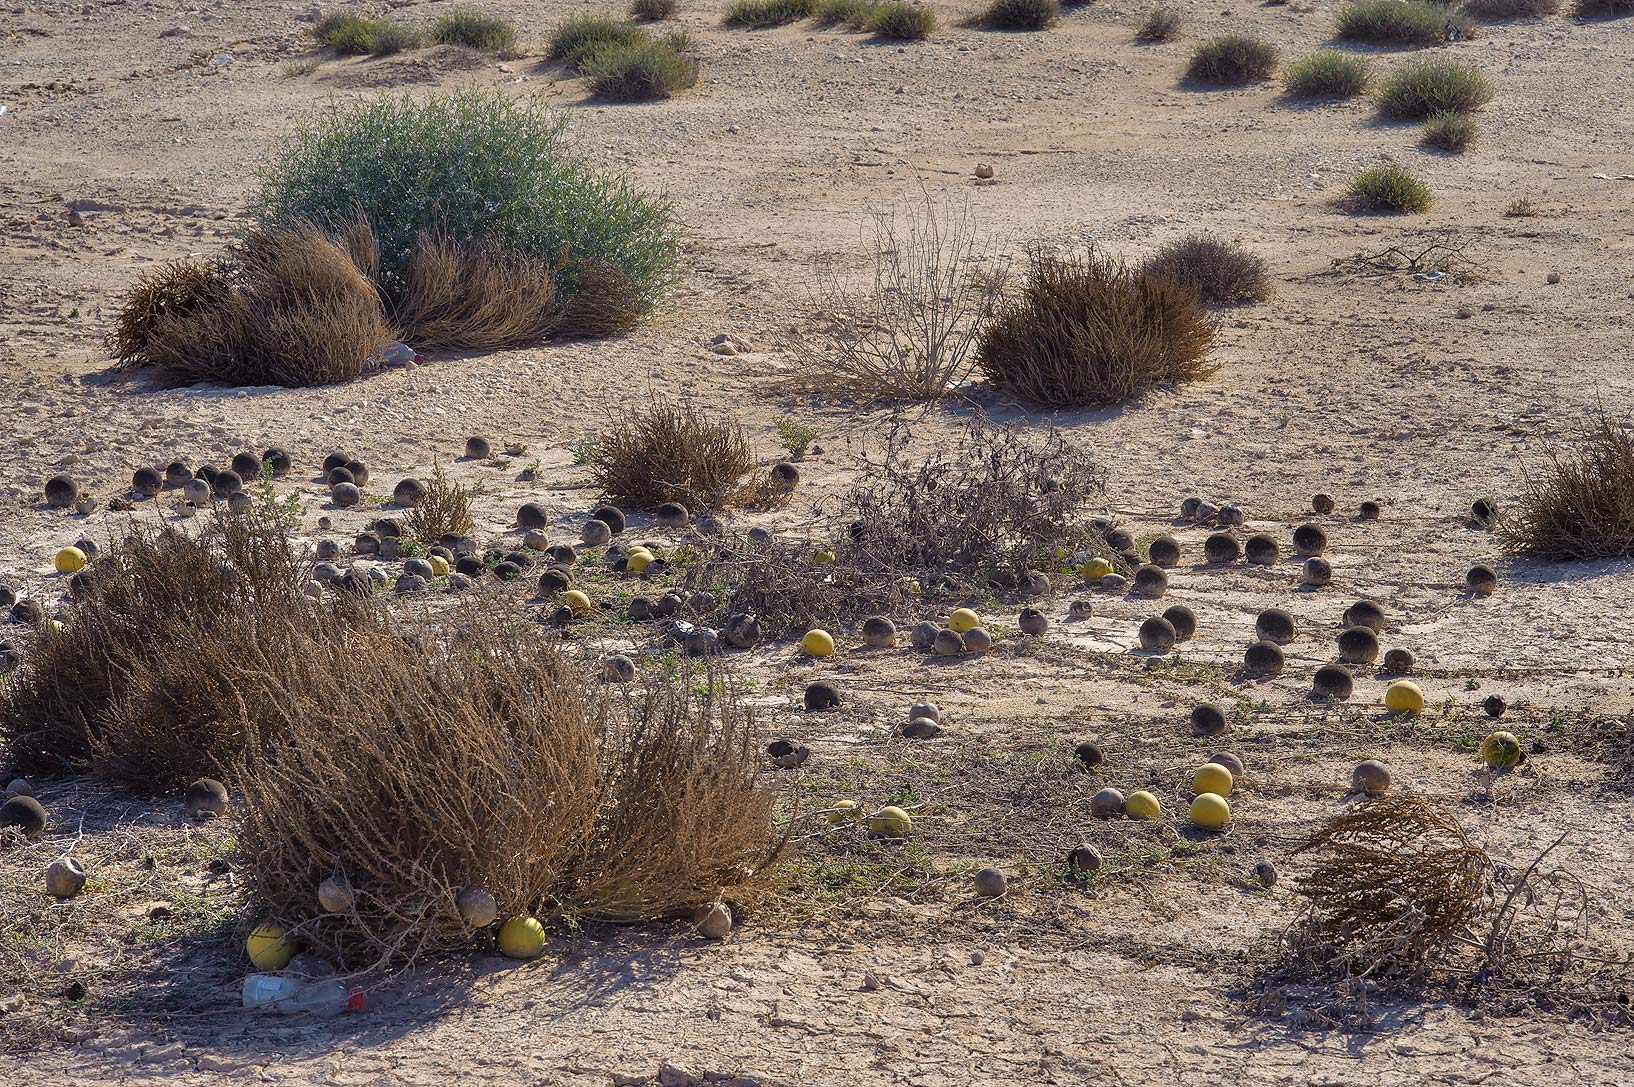 Field of rotten desert gourd (Citrullus...of Abu Samra Rd. in southern Qatar